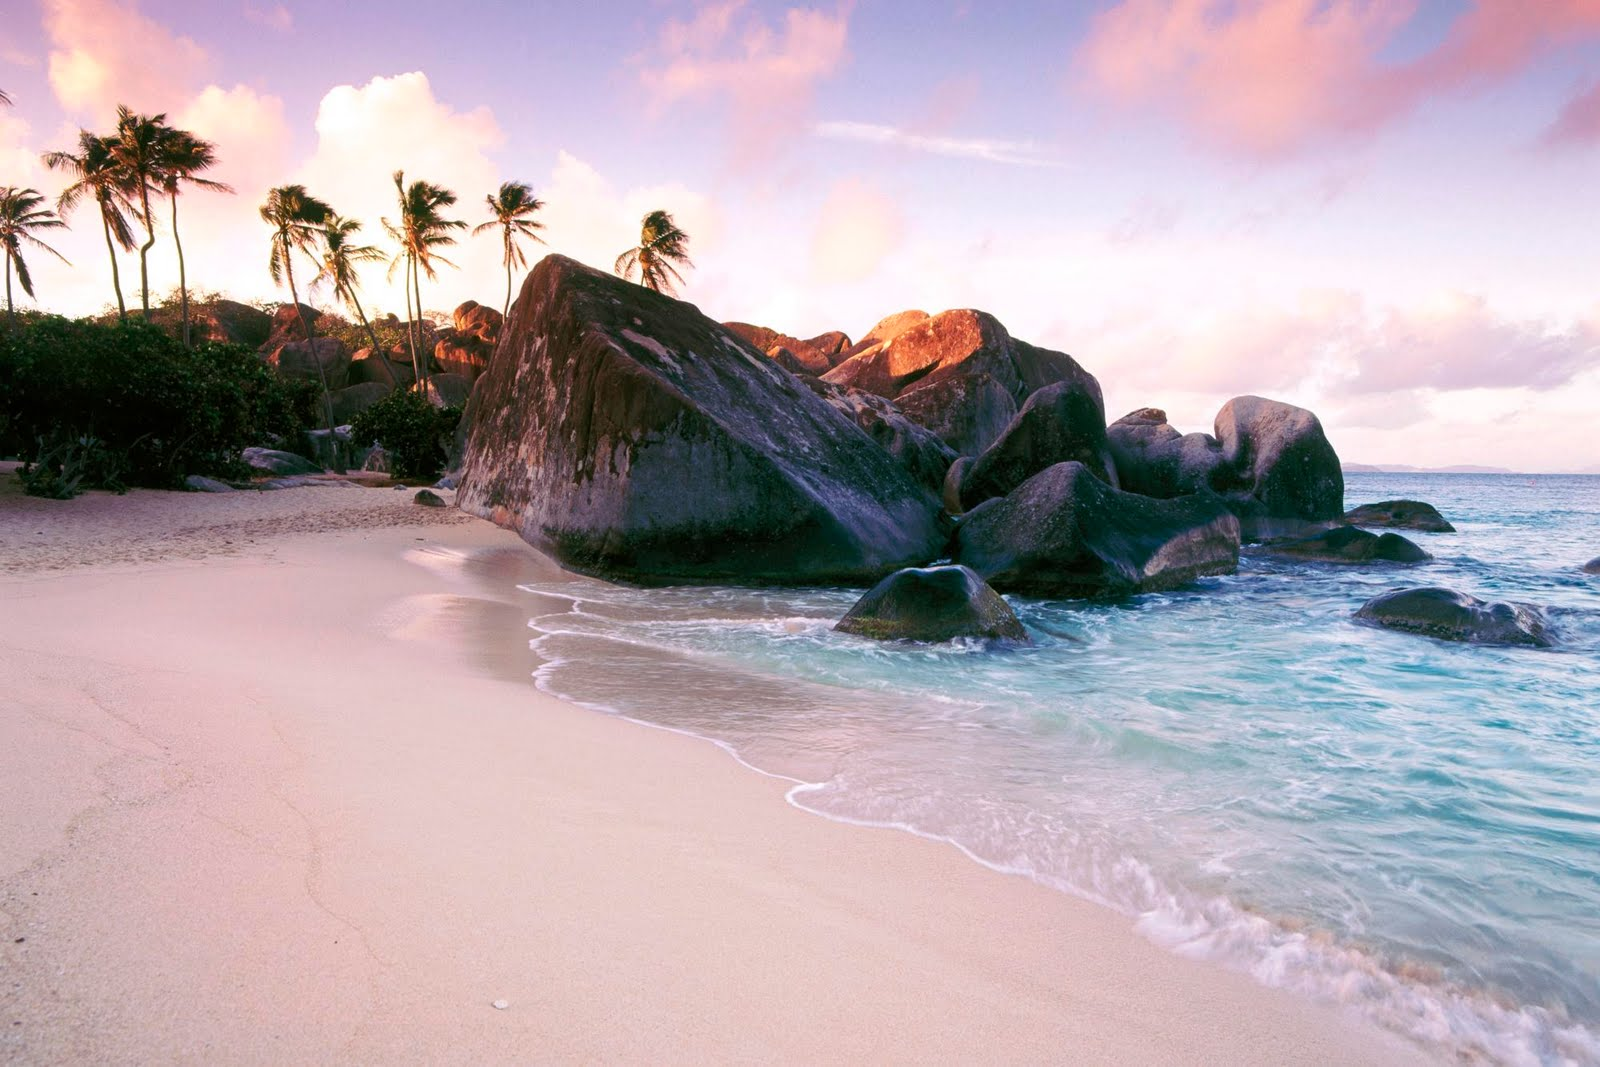 Caribbean Beach wallpaper   ForWallpapercom 1600x1067